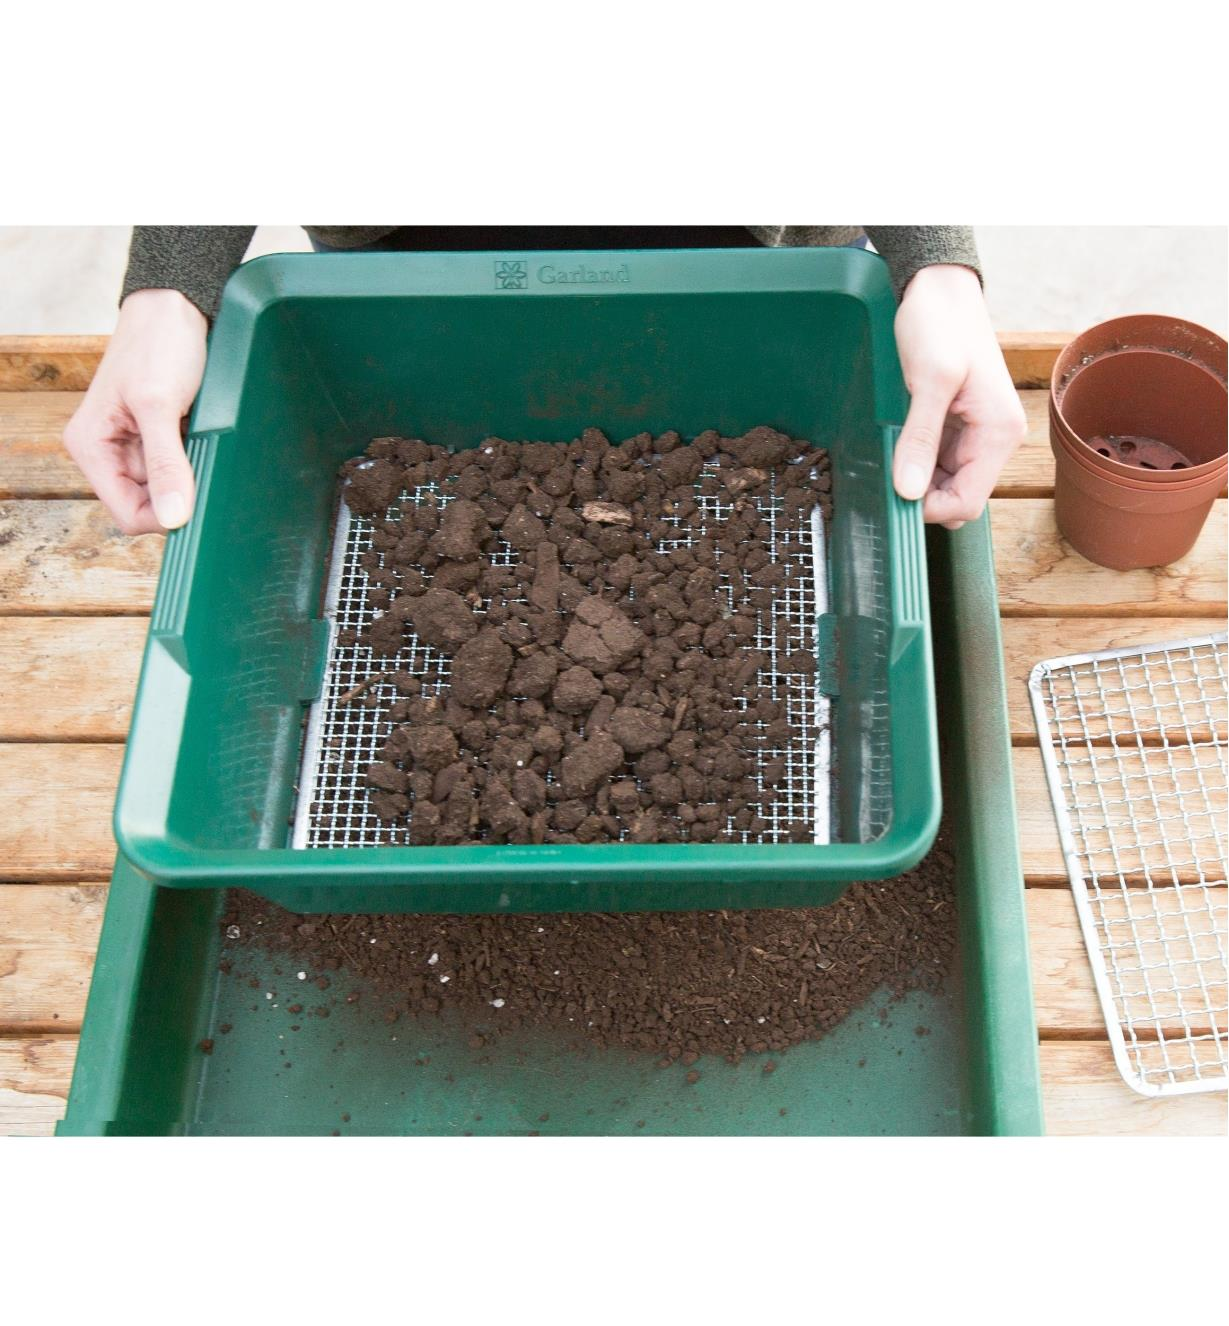 Sifting soil through the Deep Soil Sieve